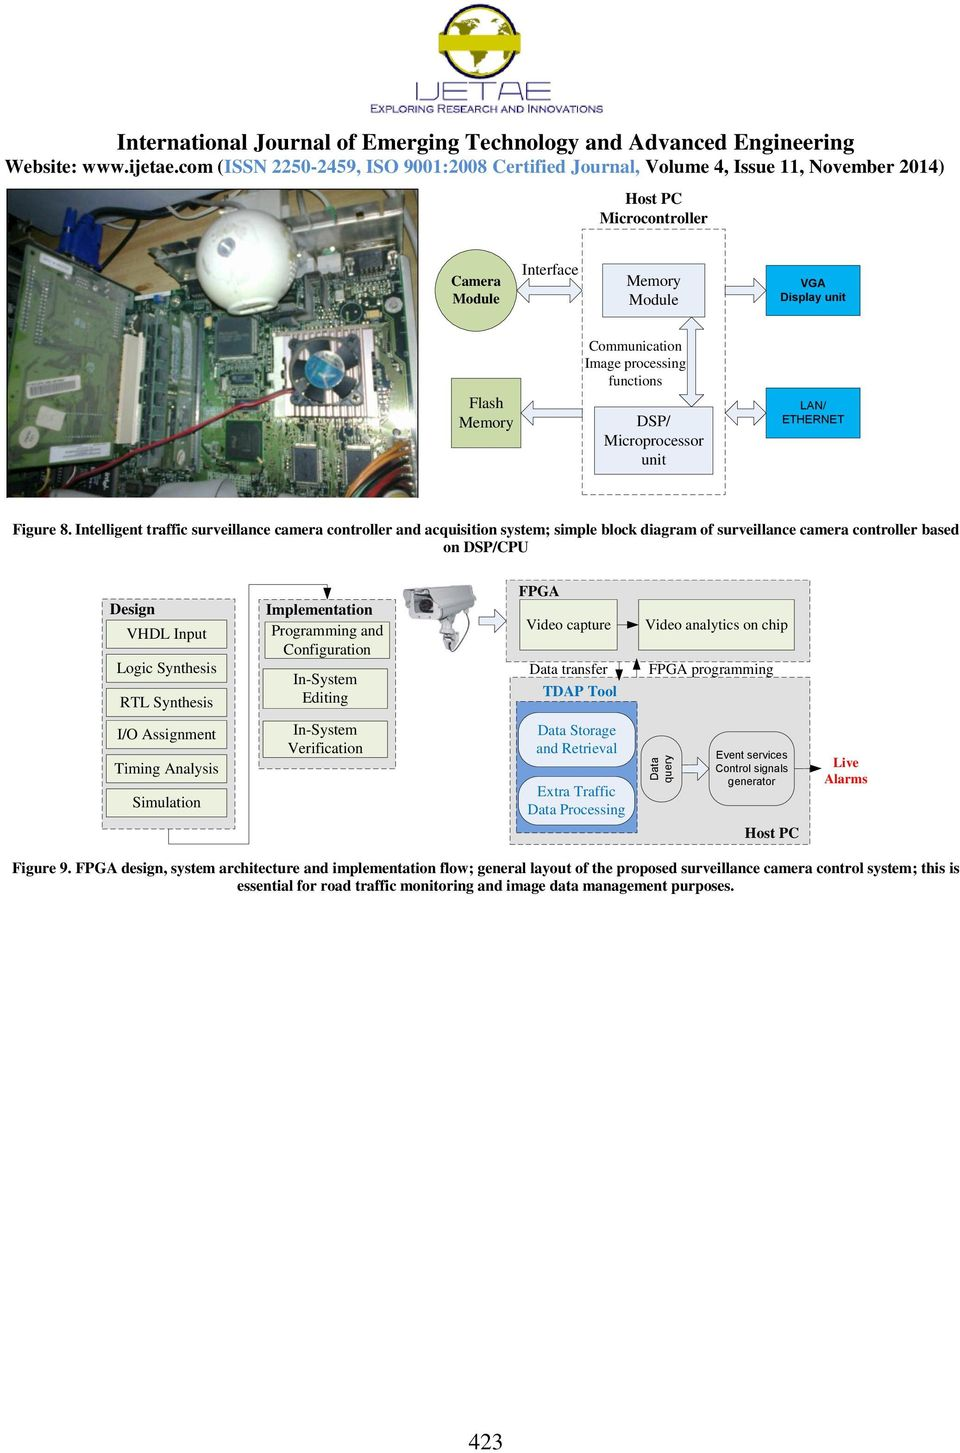 Implementation Programming and Configuration In-System Editing FPGA Video capture Data transfer TDAP Tool Video analytics on chip FPGA programming I/O Assignment Timing Analysis Simulation In-System